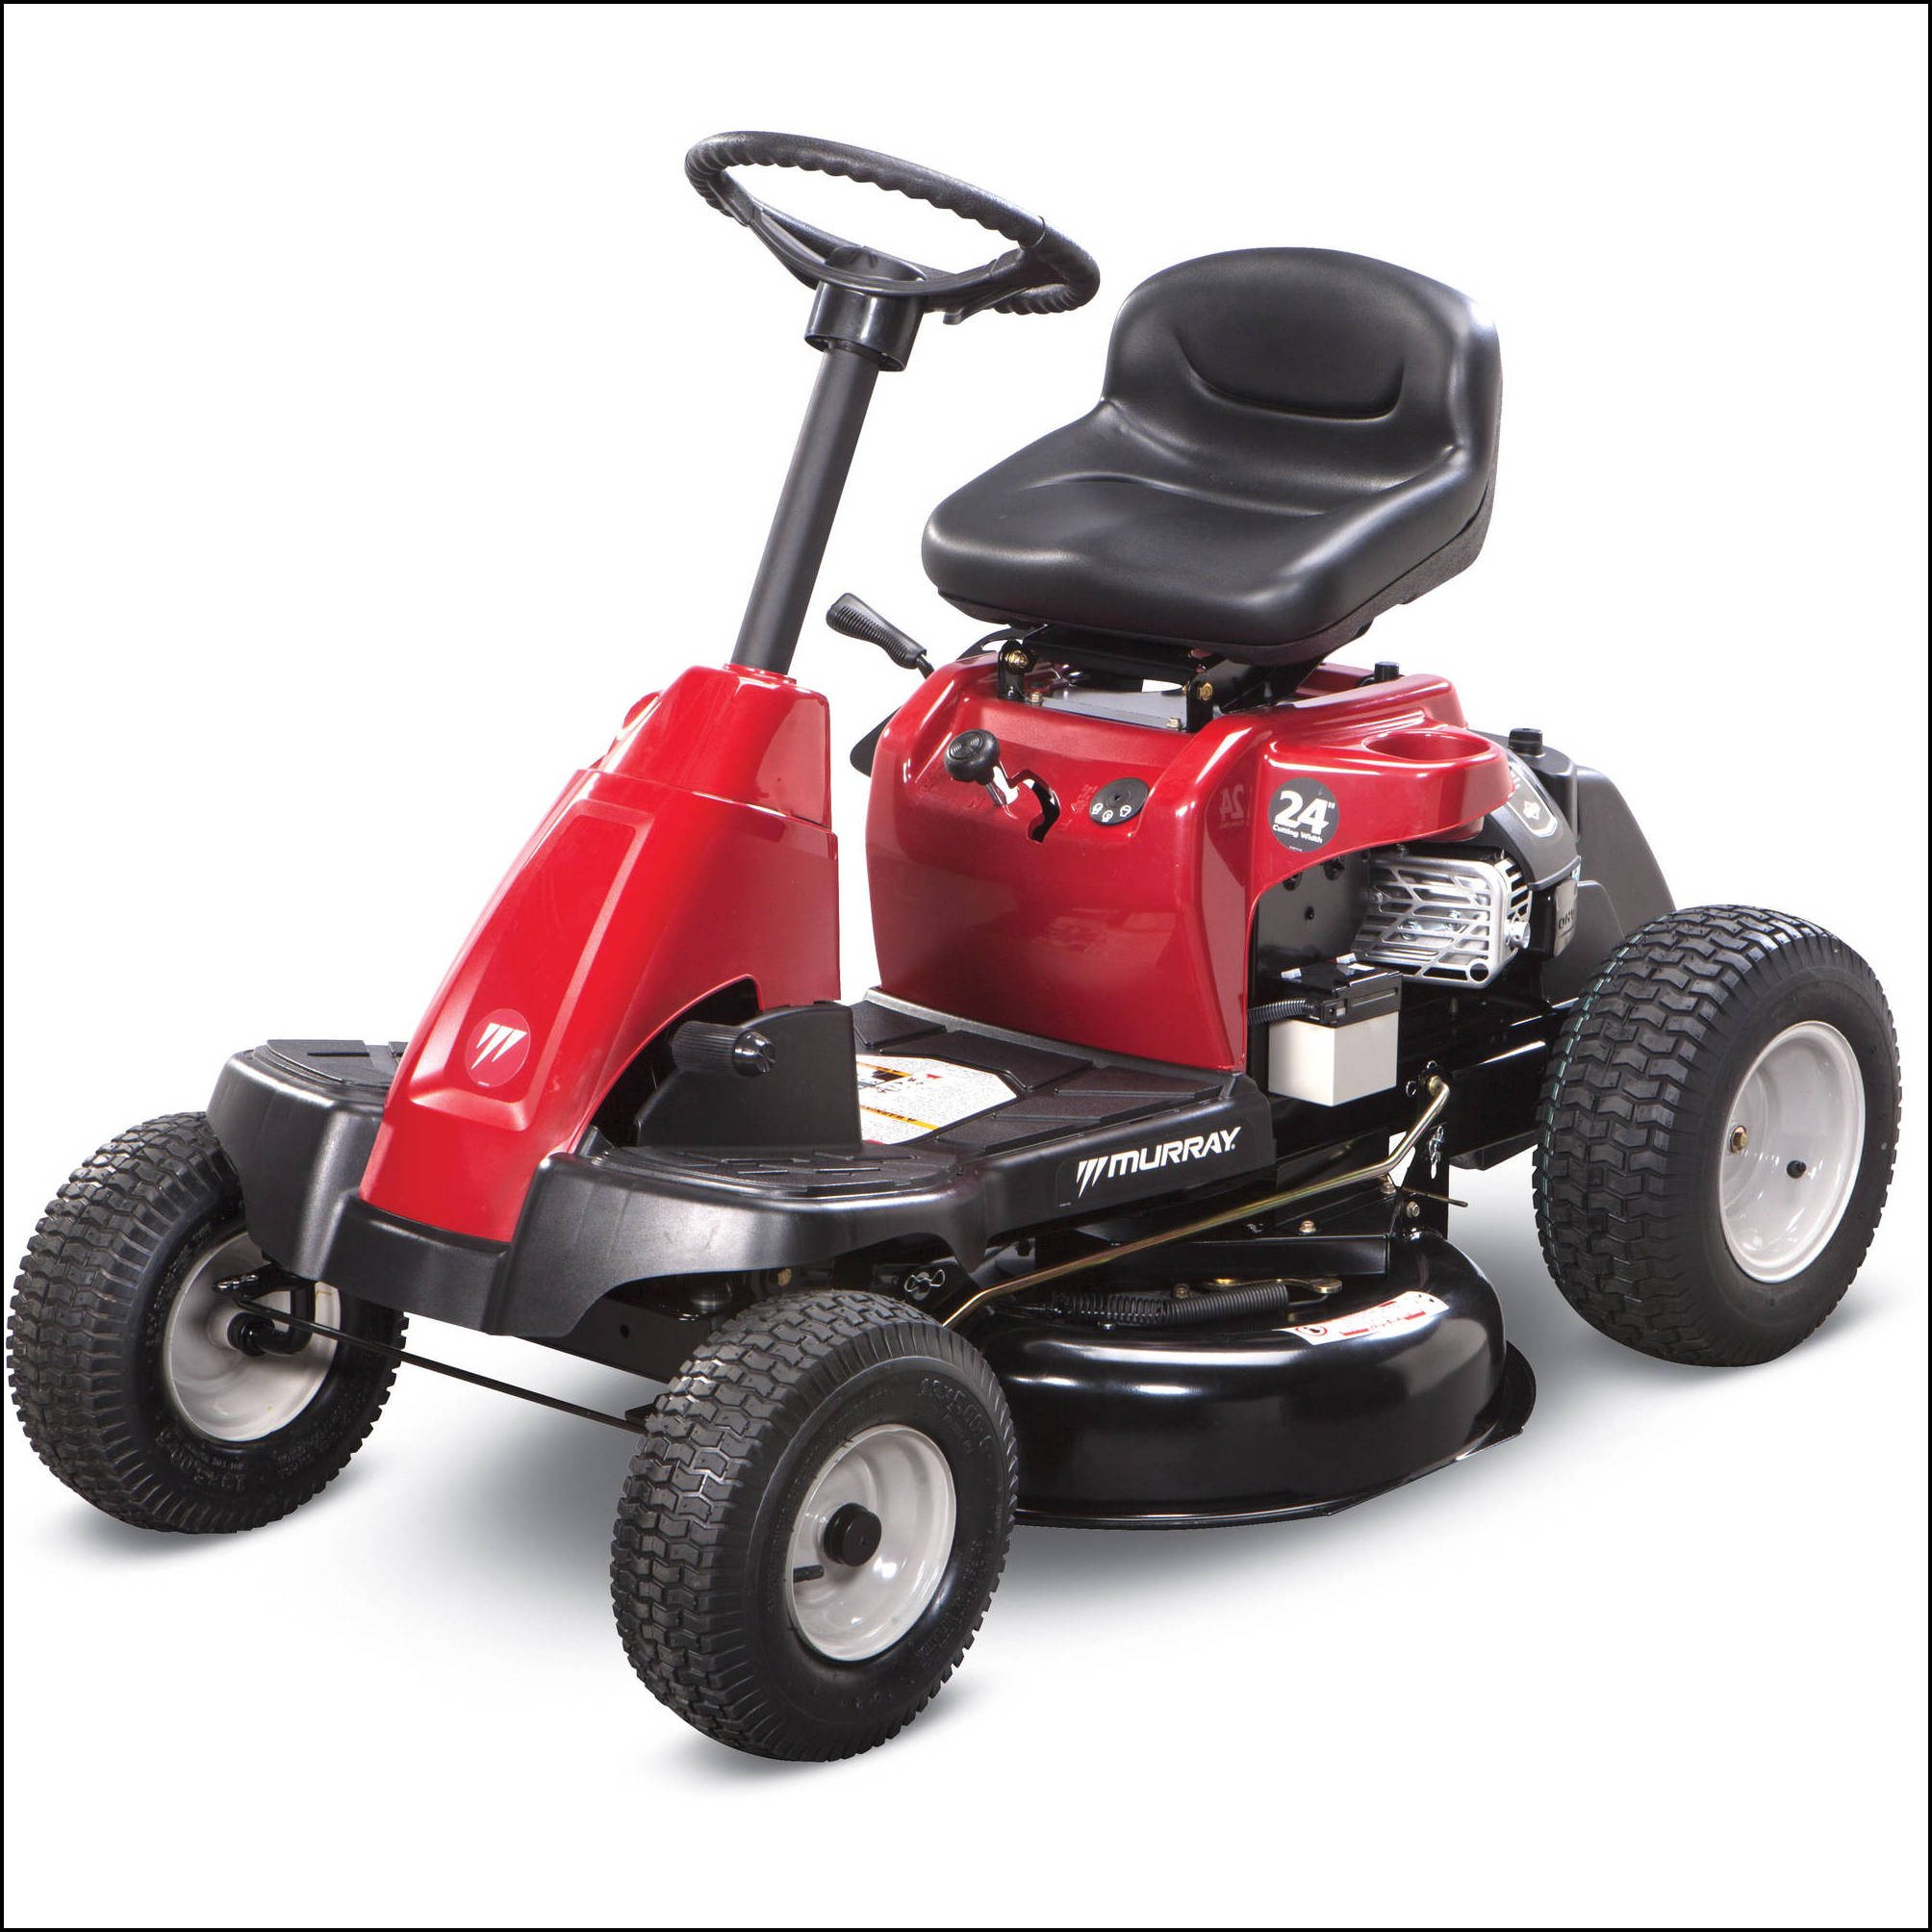 Riding Lawn Mowers On Sale The Garden